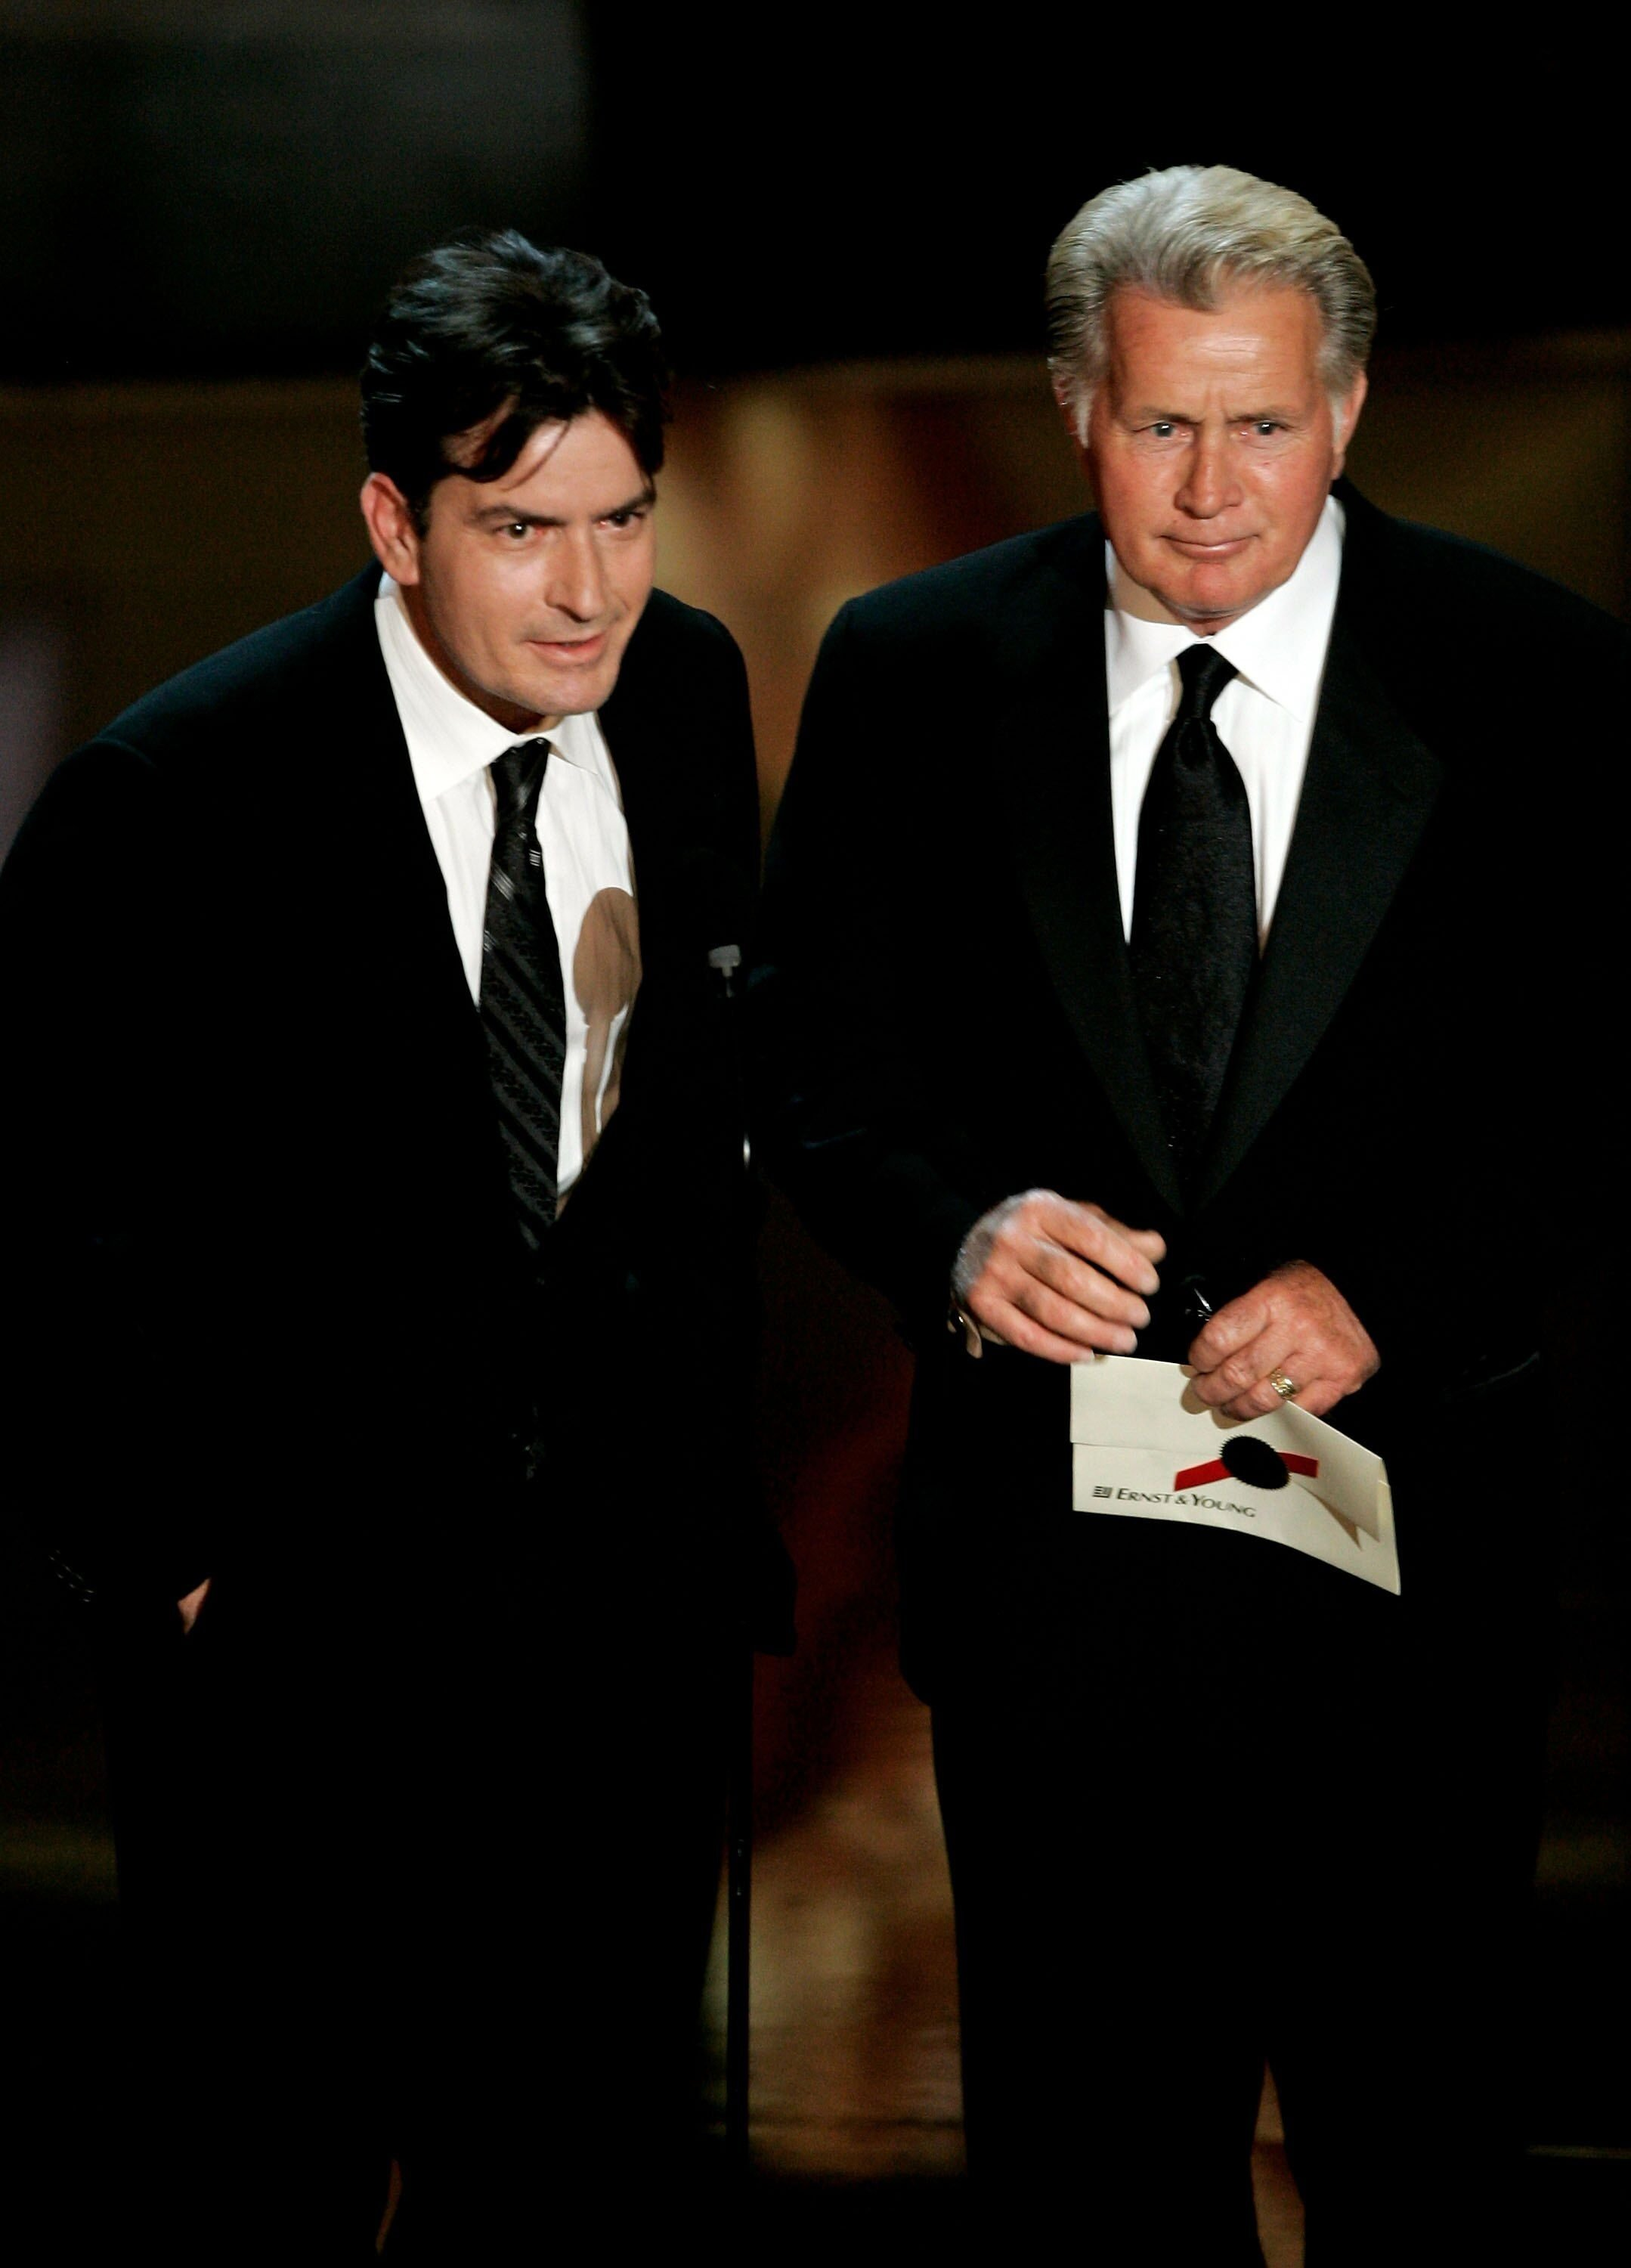 Charlie Sheen and Martin Sheen present the award for Outstanding Supporting Actress in a Drama Series onstage at the 58th Annual Primetime Emmy Awards. | Source: Getty Images